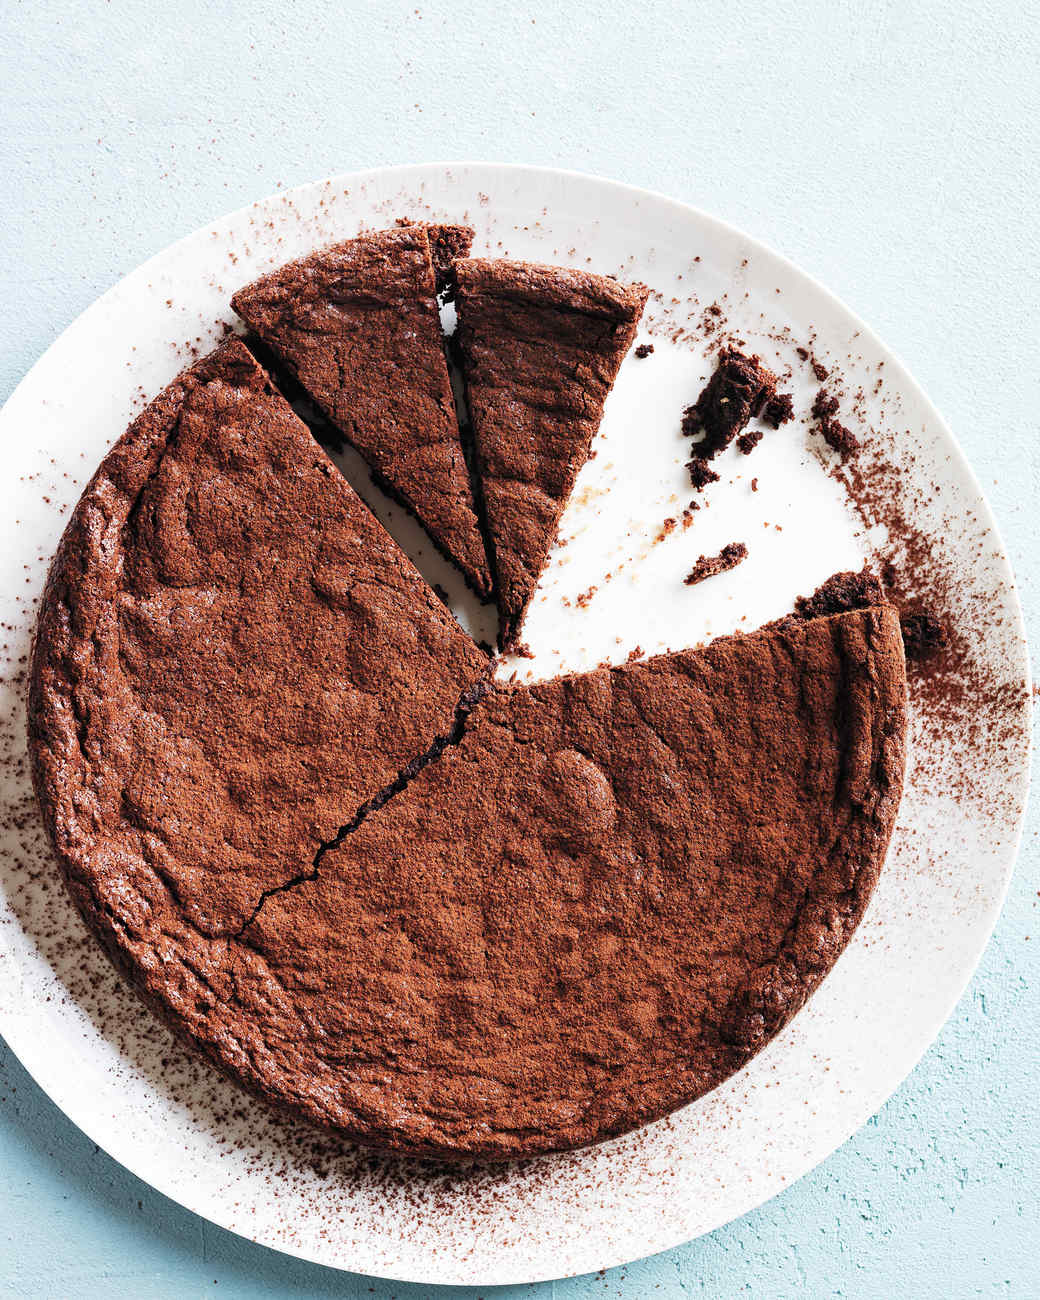 Best Chocolate Cake Recipes | Martha Stewart